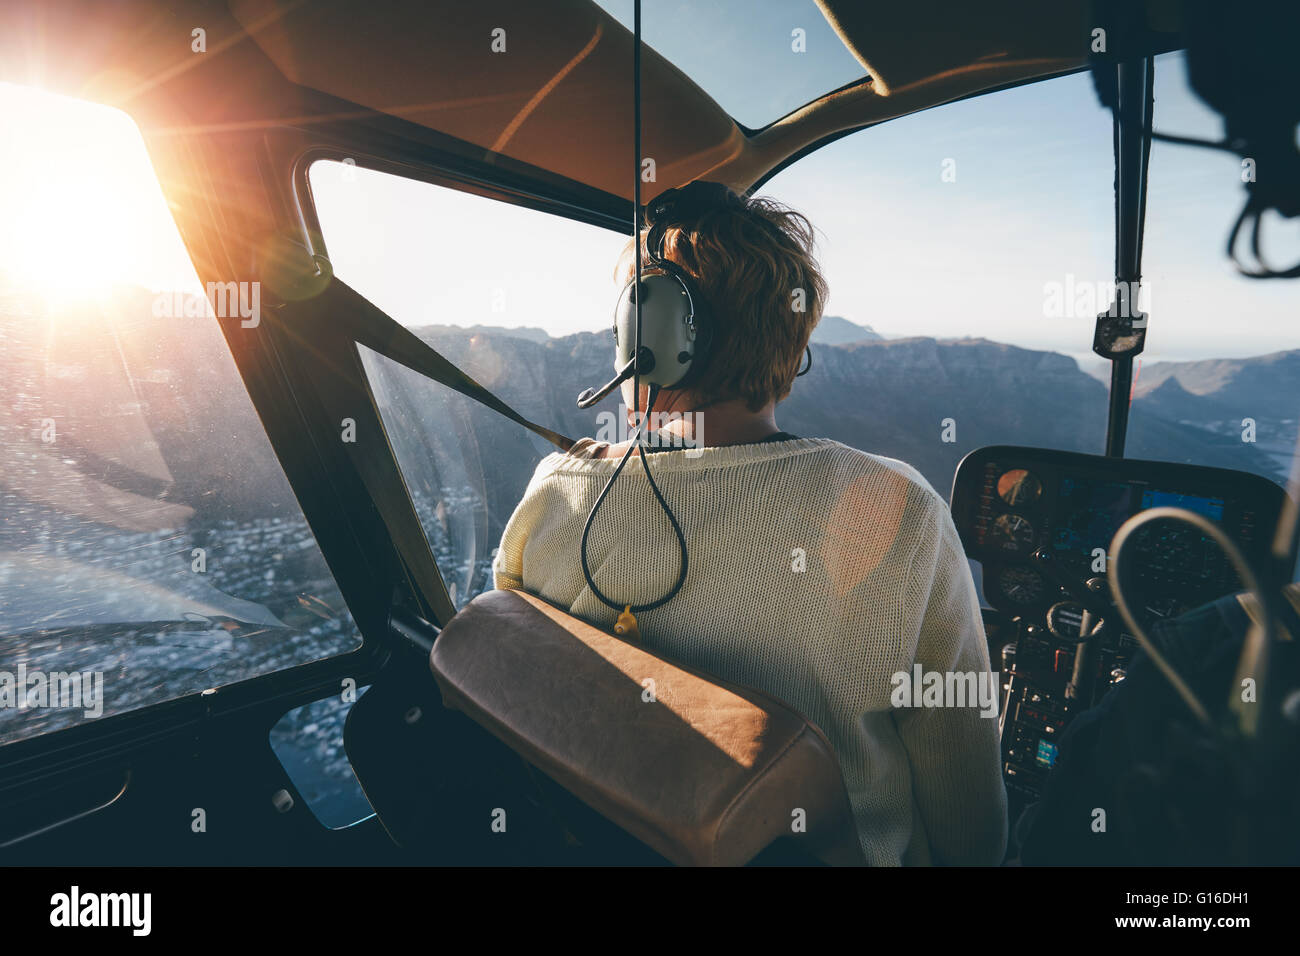 Rear view of female tourist on helicopter looking out of the window. Helicopter passenger admiring the view. - Stock Image